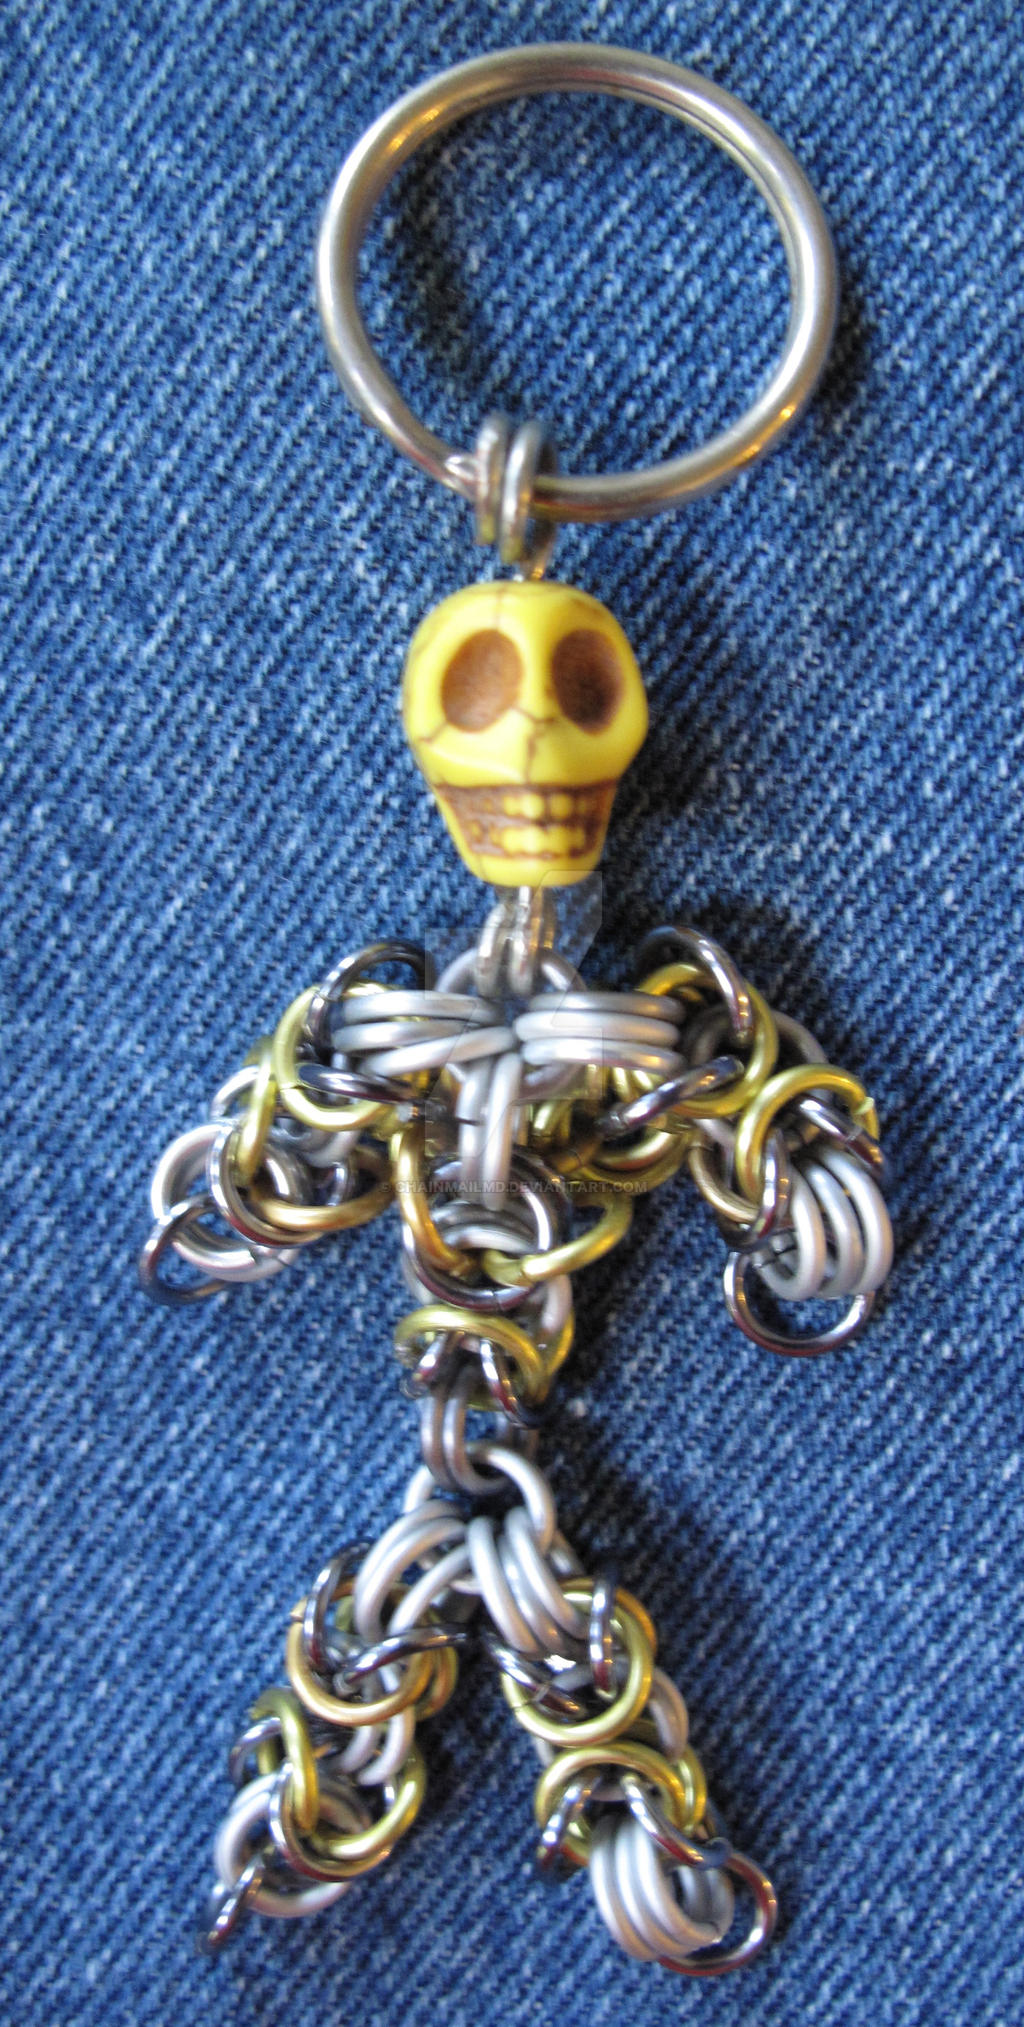 Handcrafted chain mail skeleton pendant keychain by chainmailmd handcrafted chain mail skeleton pendant keychain by chainmailmd mozeypictures Image collections